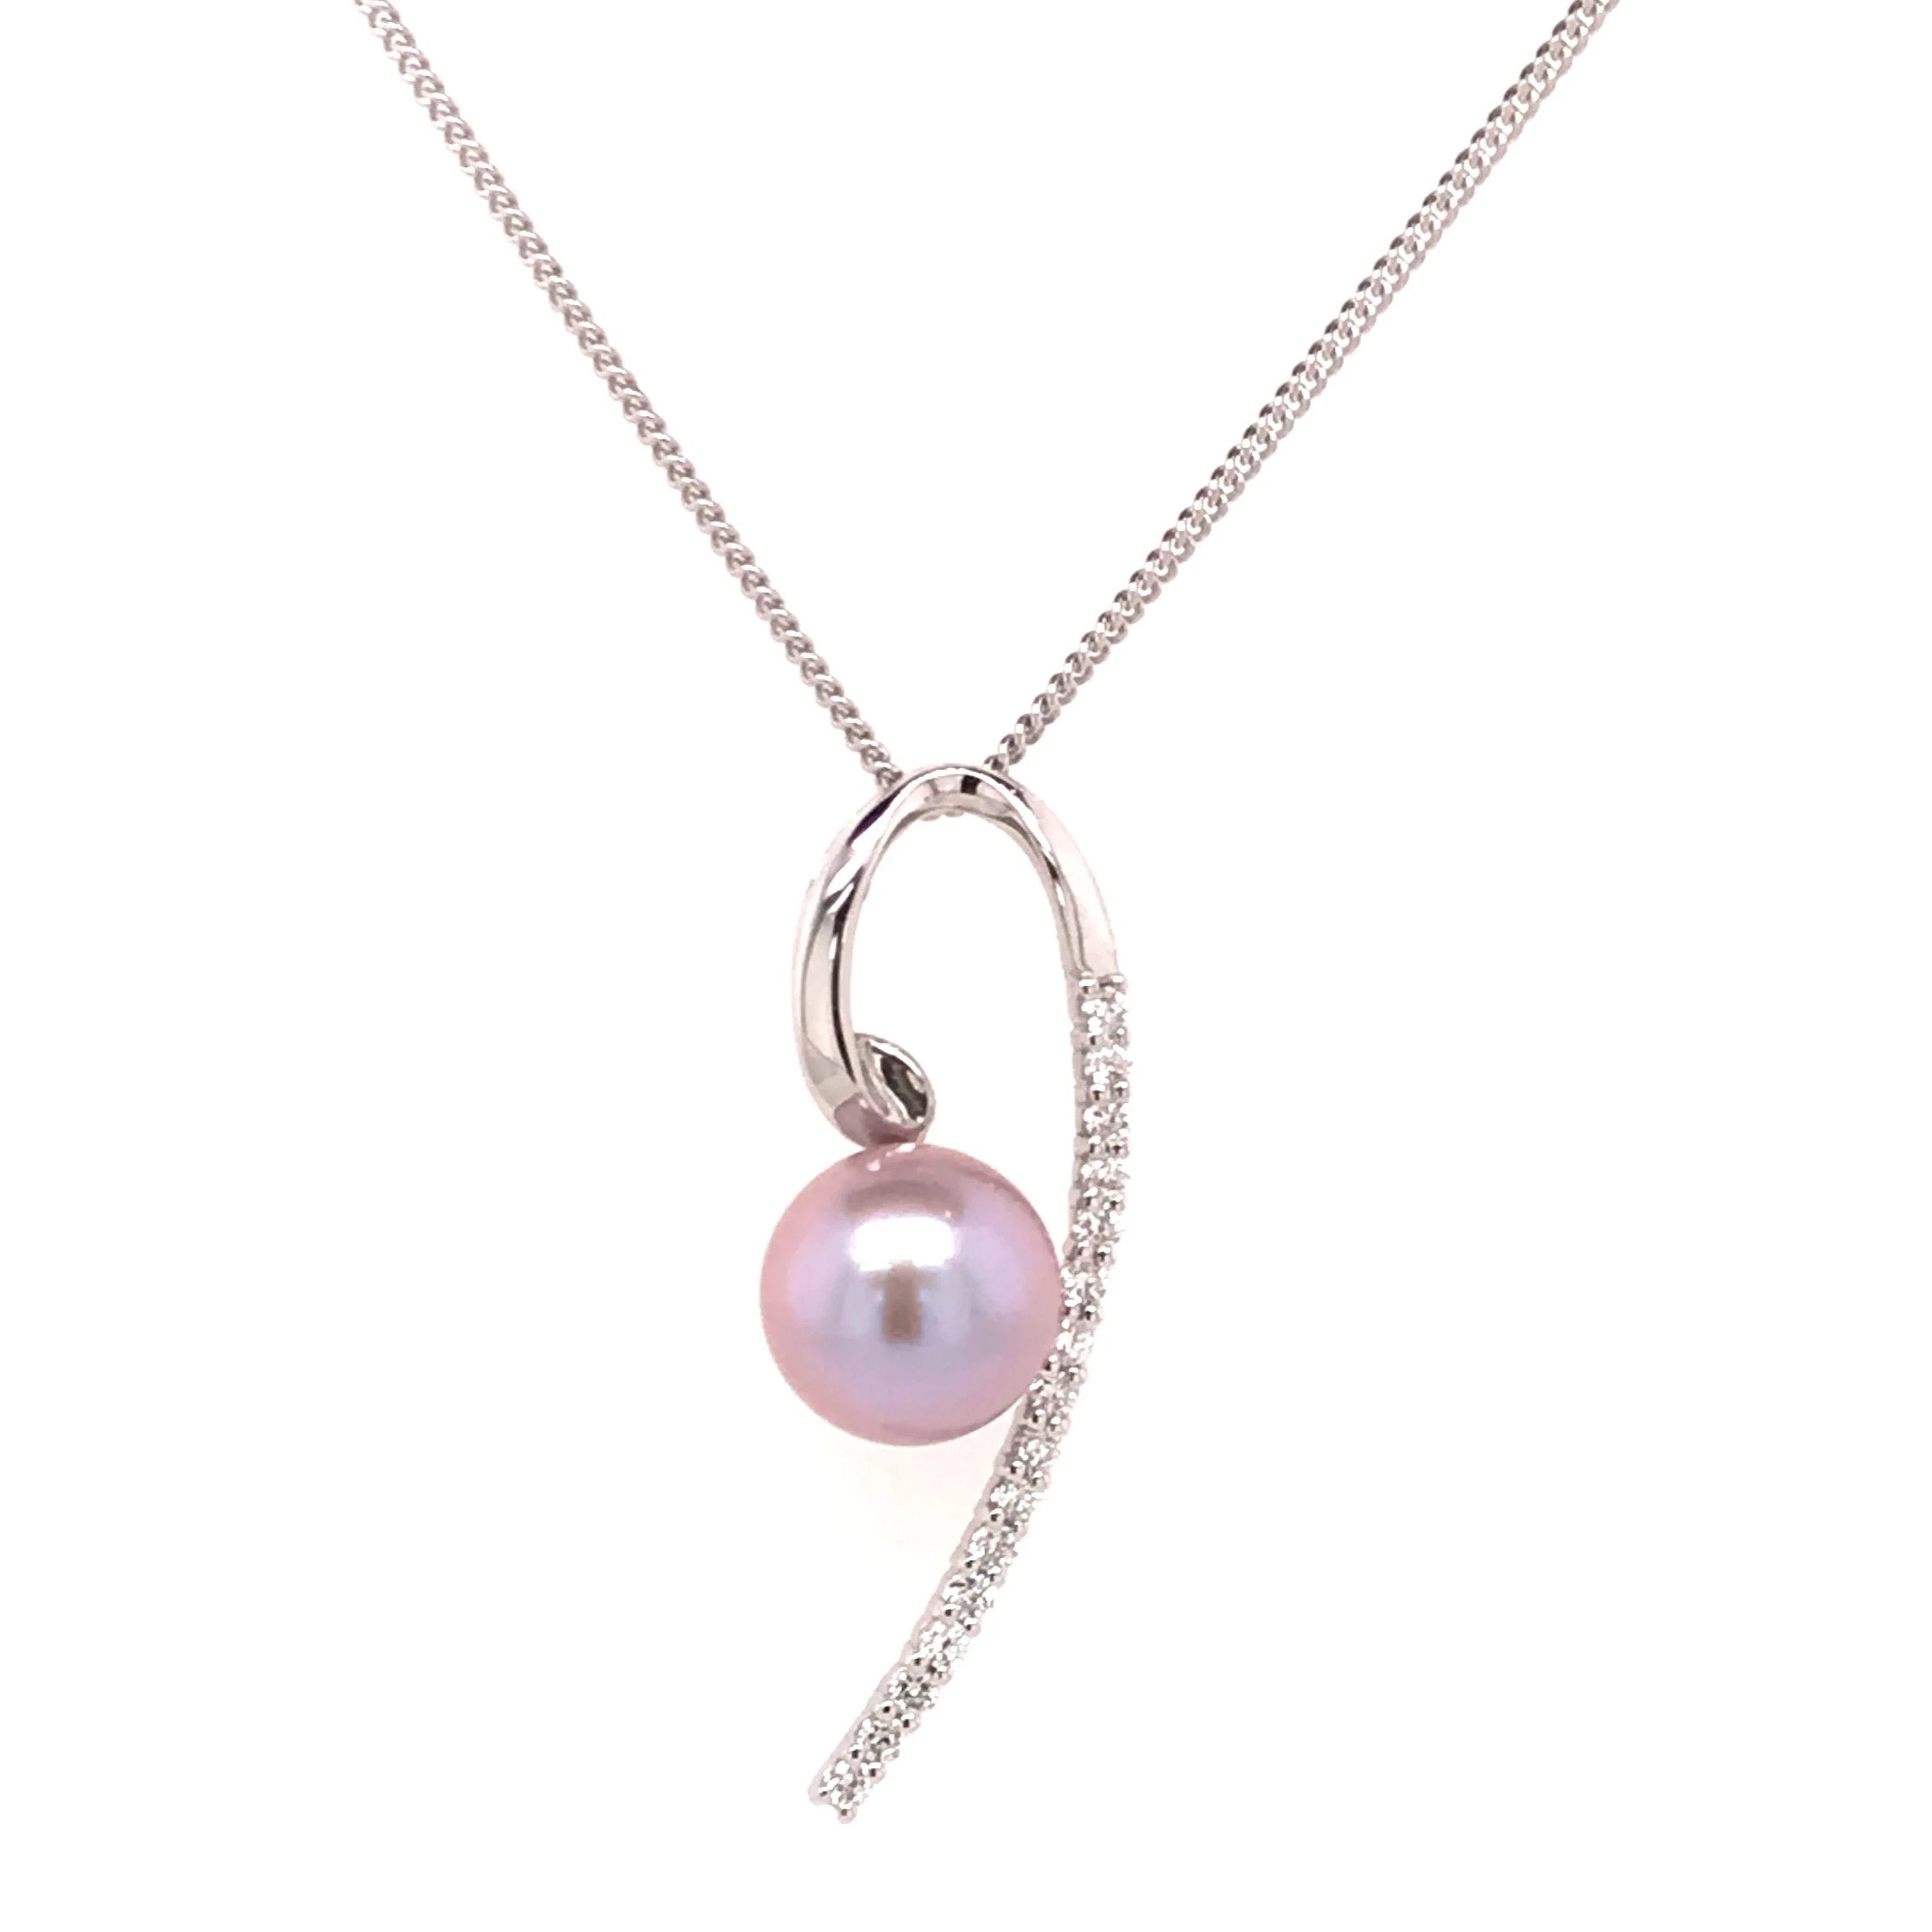 9ct White Gold Pearl & Diamond Pendant & Chain - Andrew Scott